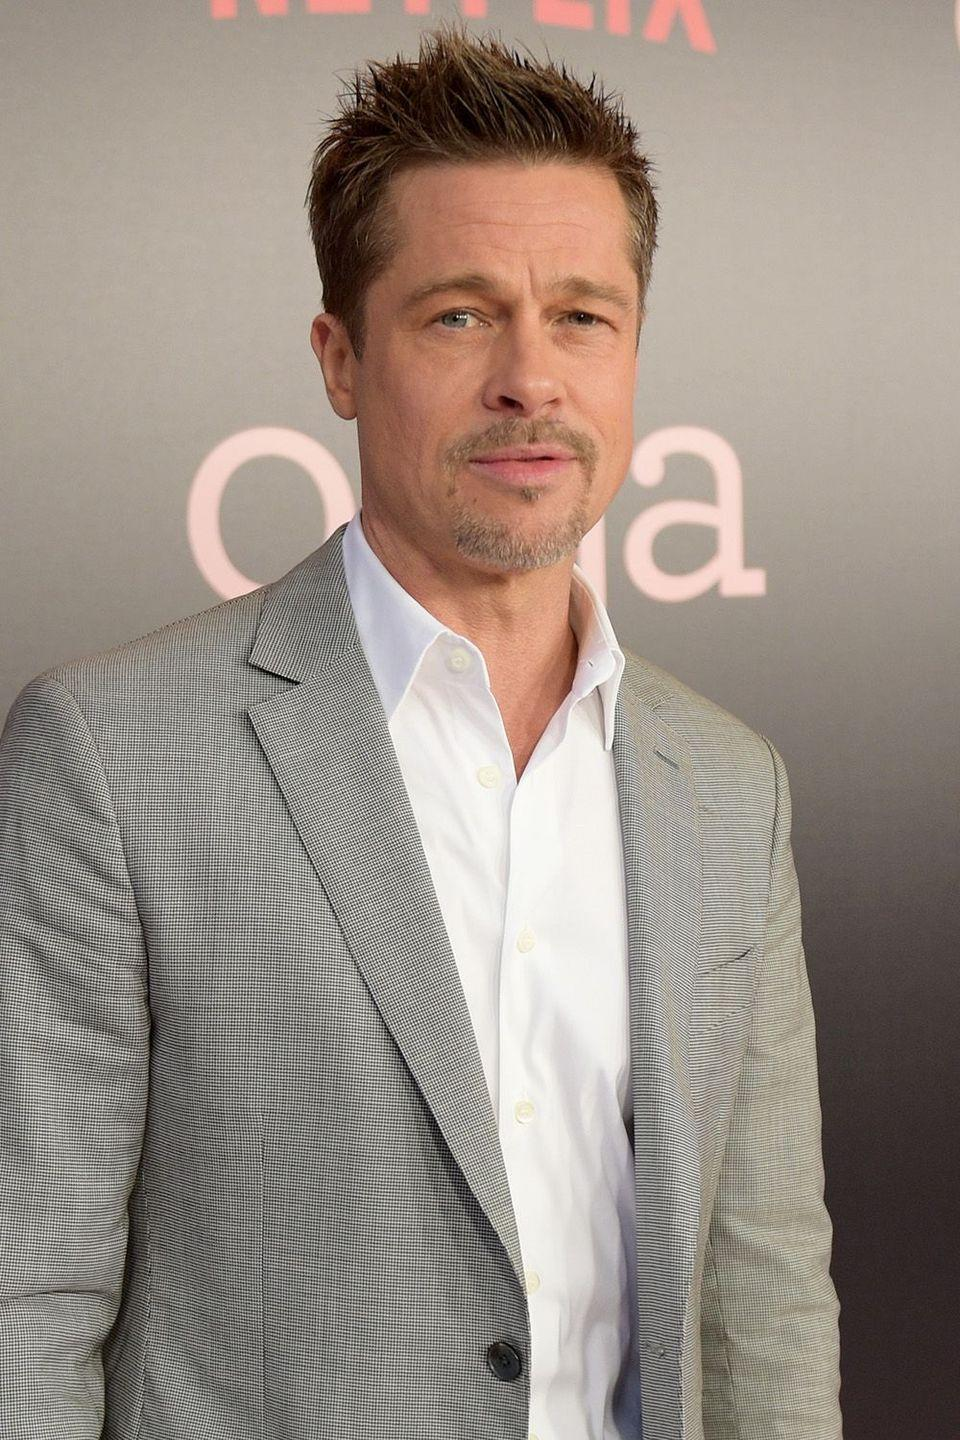 """<p>The actor opened up most recently in his <a href=""""http://www.gq.com/story/brad-pitt-gq-style-cover-story"""" rel=""""nofollow noopener"""" target=""""_blank"""" data-ylk=""""slk:GQ Style"""" class=""""link rapid-noclick-resp""""><em>GQ Style</em></a> cover story this year about his struggles with alcohol addiction in the past. When asked about it was going cold turkey, he simply explained """"I didn't want to live that way any more."""" </p>"""